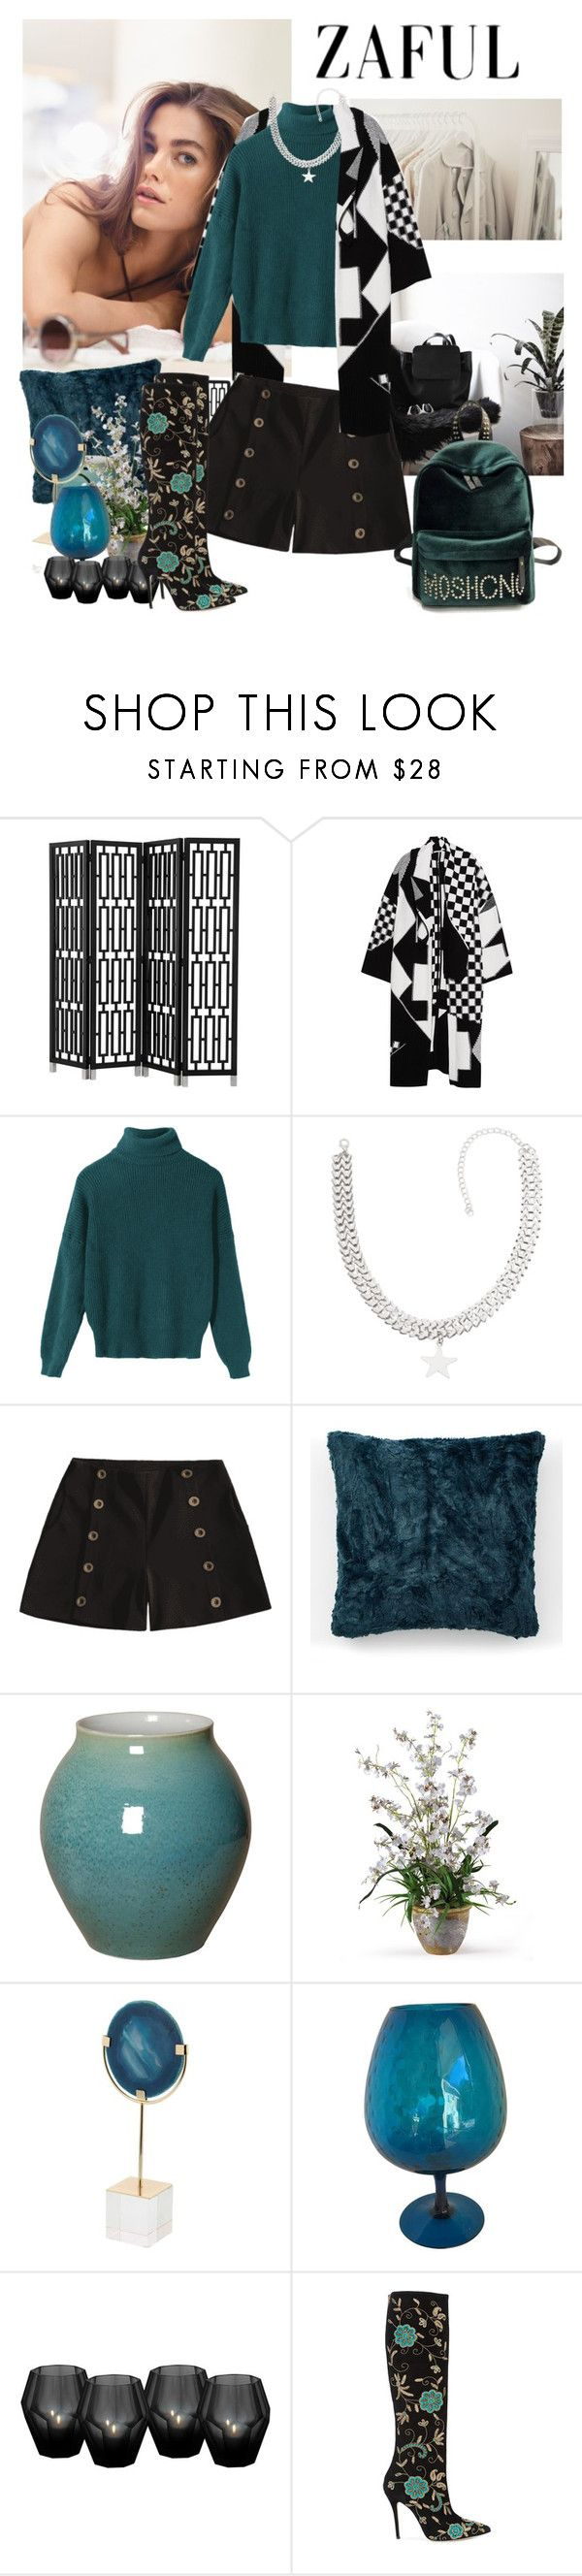 """""""How to wear shorts in winter"""" by moni4e ❤ liked on Polyvore featuring Eichholtz, STELLA McCARTNEY, West Elm and Oscar de la Renta"""